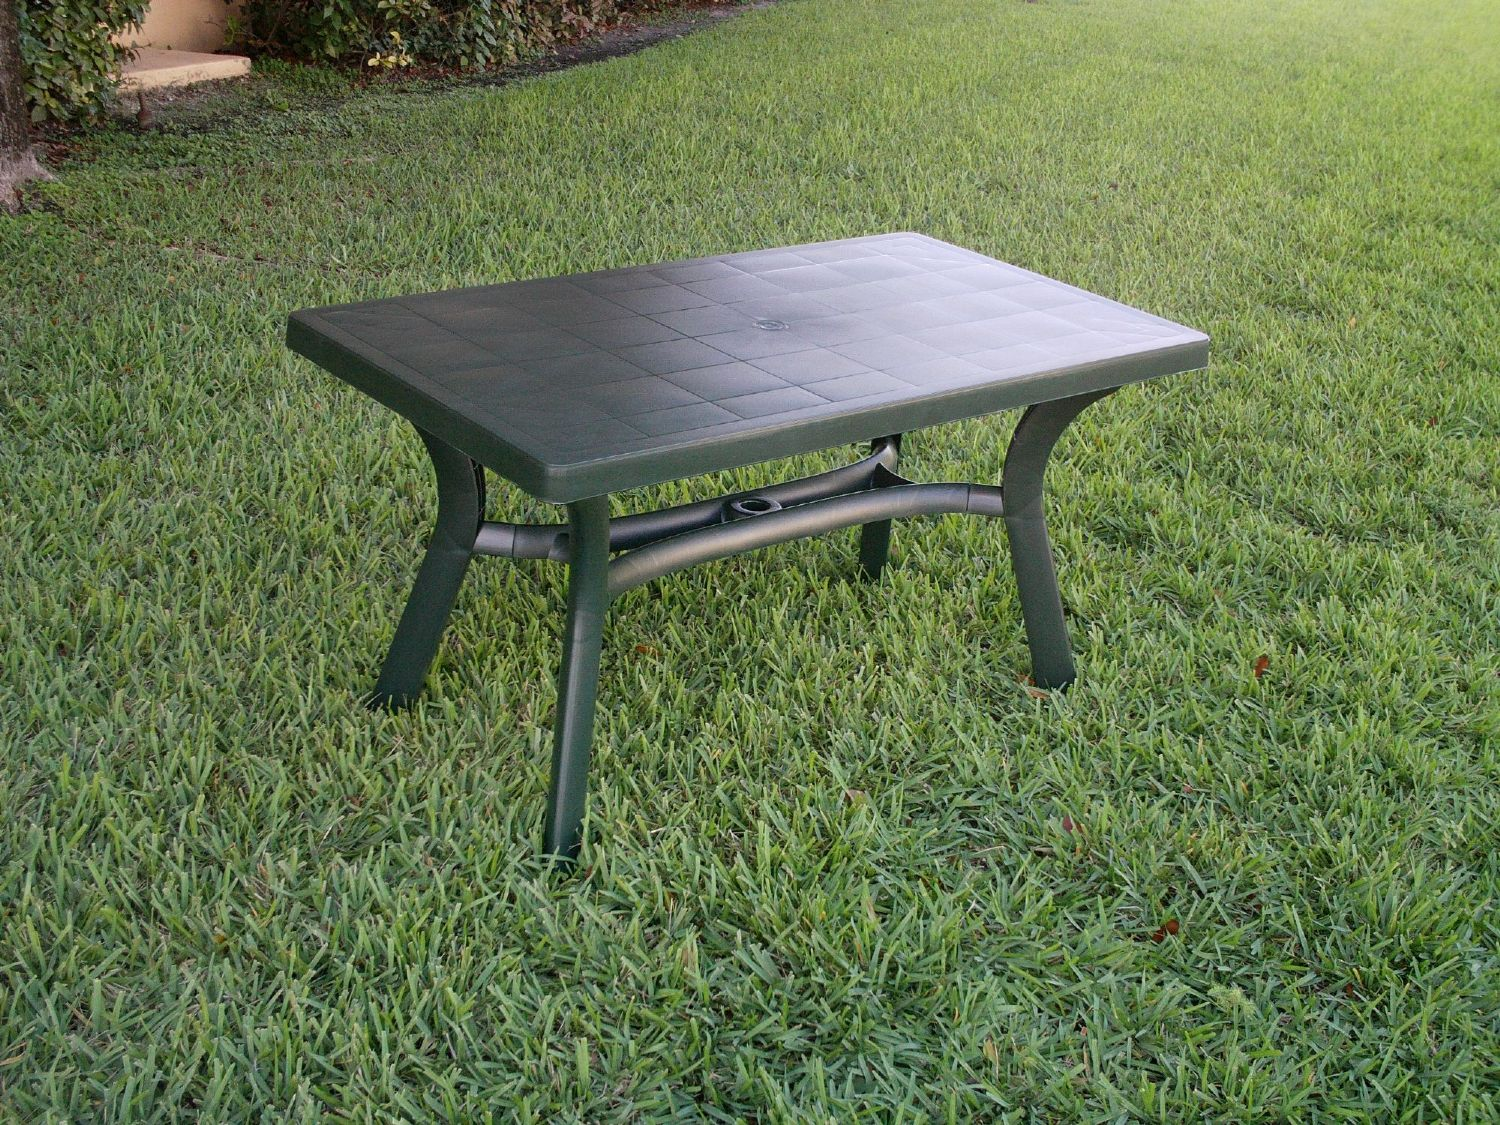 Sunrise Resin Rectangle Table 55 inch Dark Green ISP182-GRE - 2